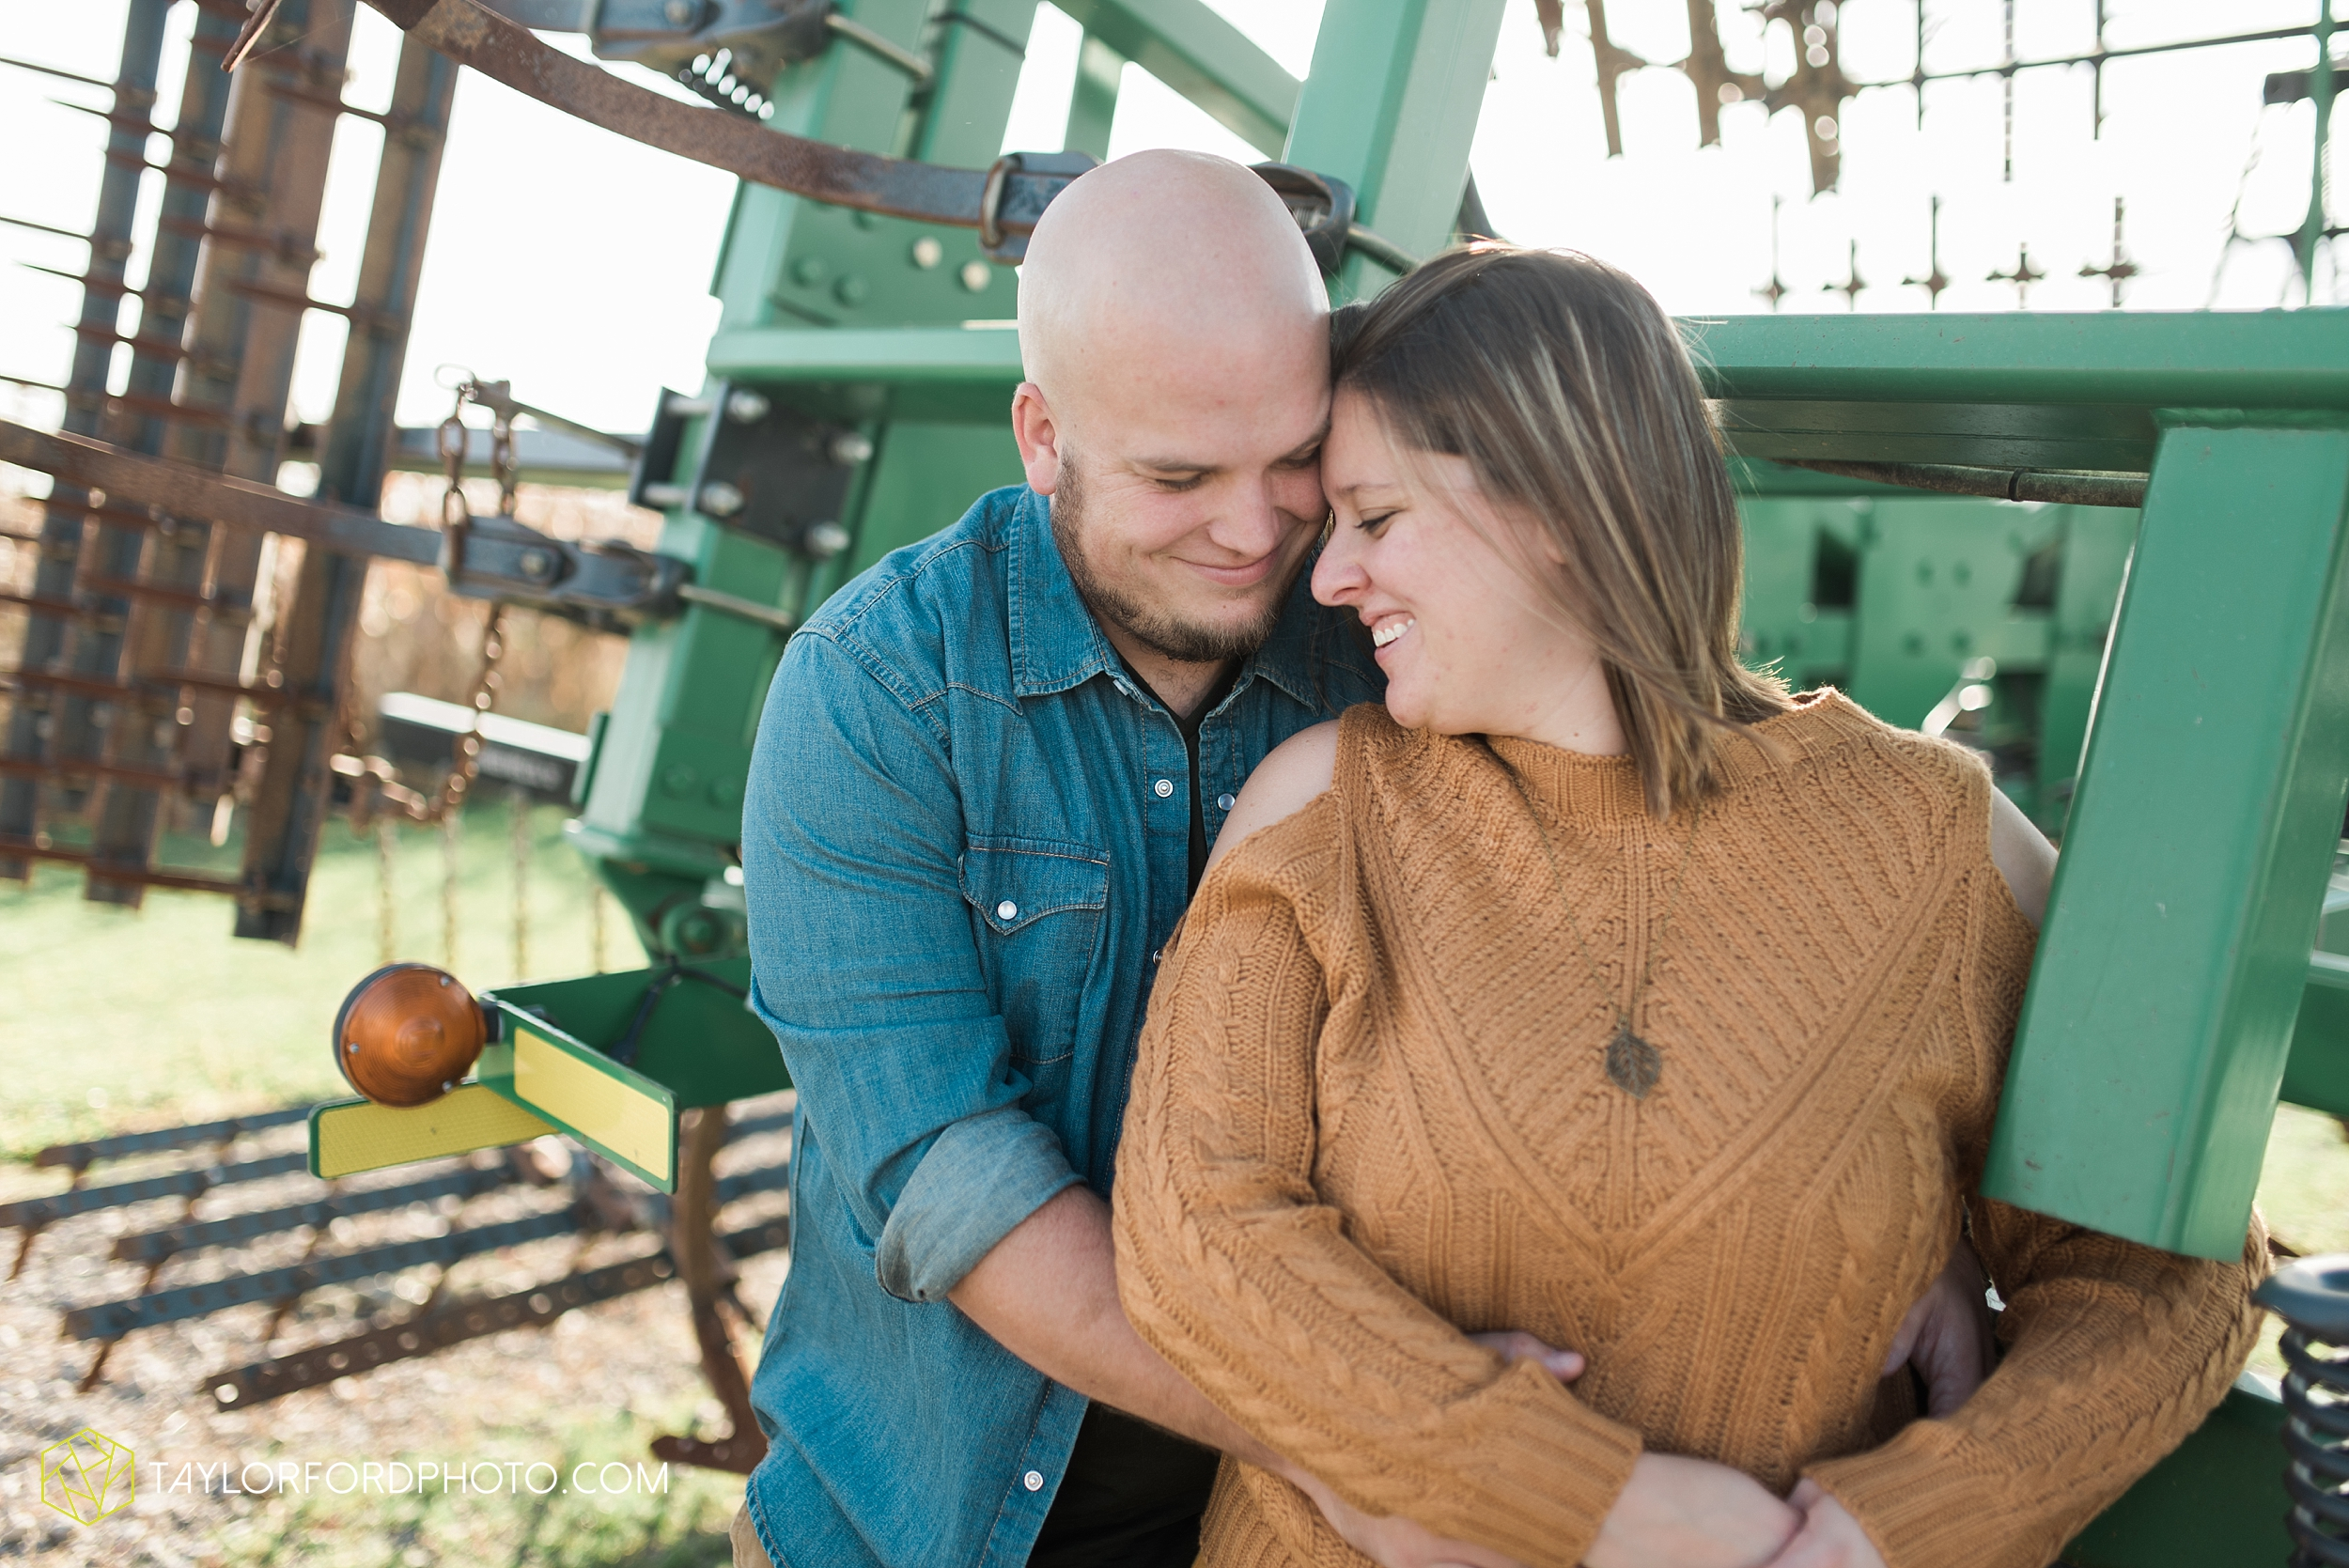 van-wert-ohio-engagement-wedding-photographer-Taylor-Ford-Photography-fall-farm-nature_4142.jpg